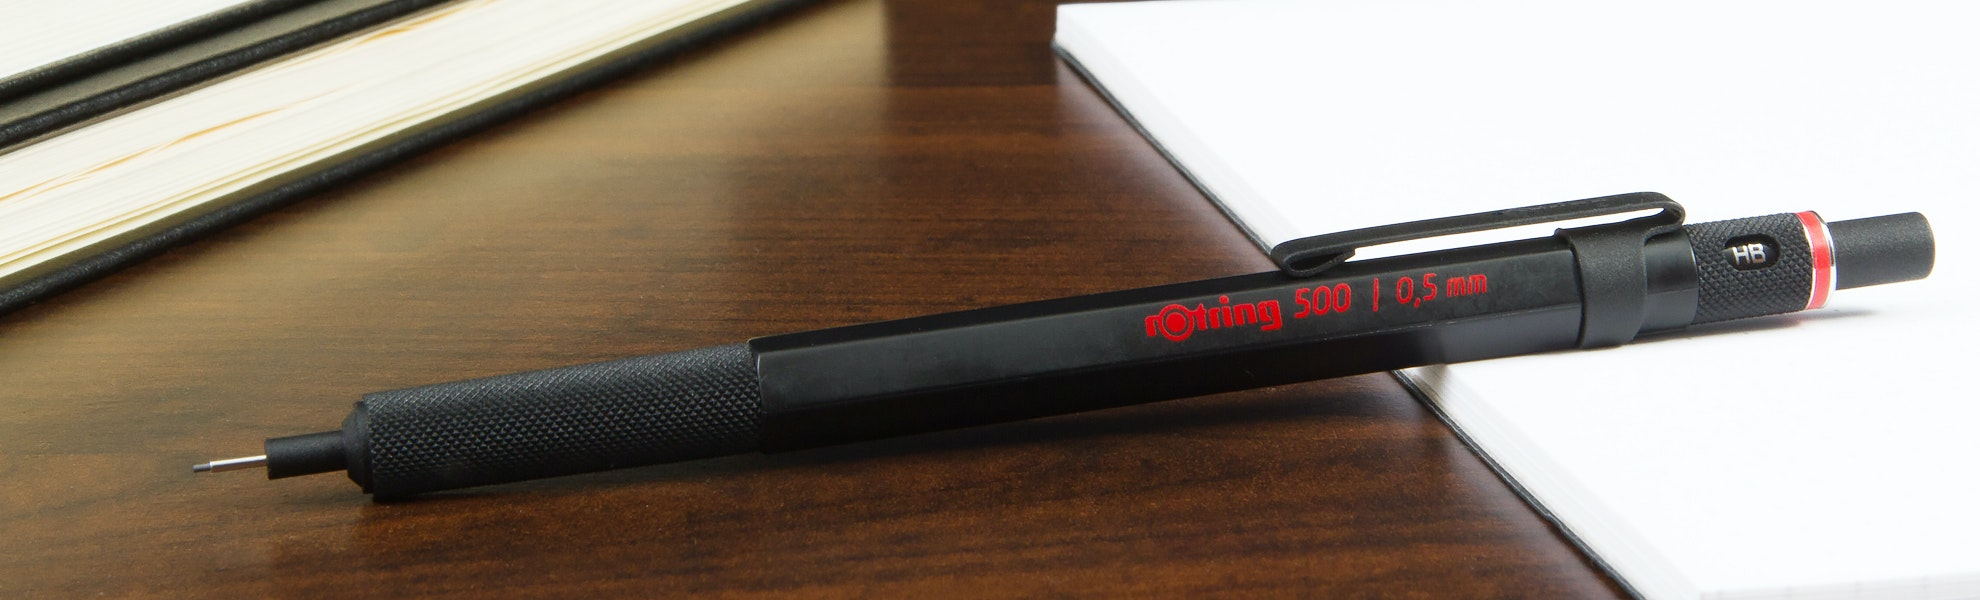 rOtring 500 Mechanical Pencil (2-Pack)